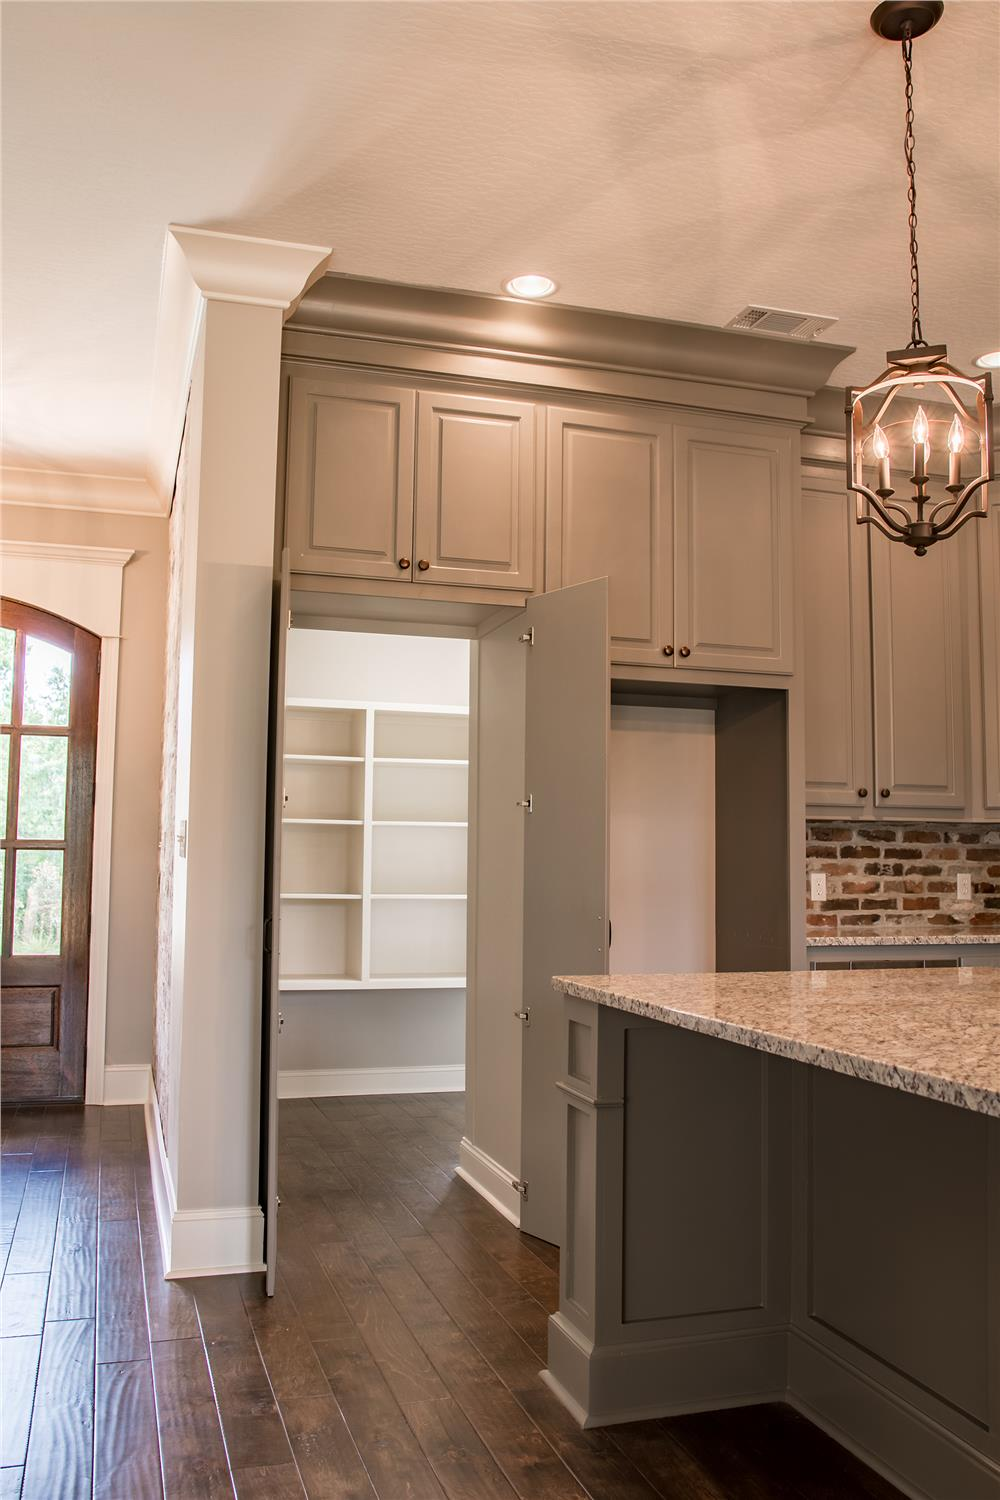 Spacious walk-in kitchen pantry in House Plan #142-1160